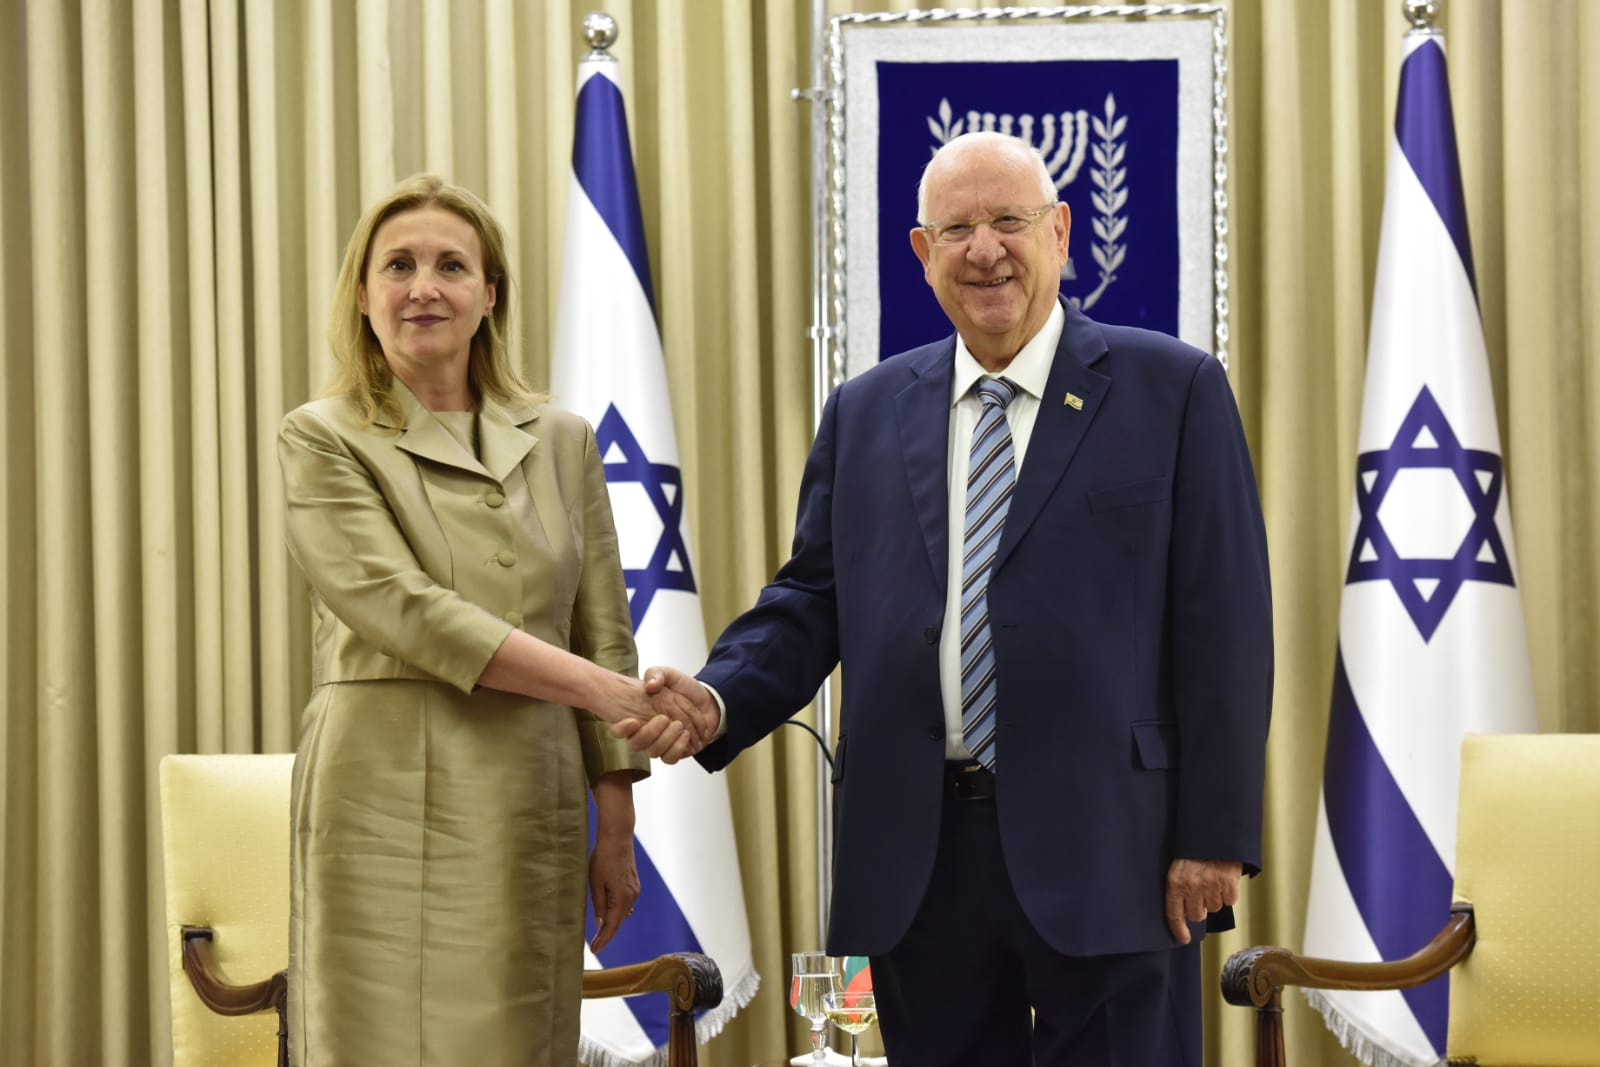 The Ambassador Extraordinary and Plenipotentiary of the Republic of Bulgaria to the State of Israel Rumiana Bachvarova presented her letter of credence to  his the President of Israel Reuven Rivlin